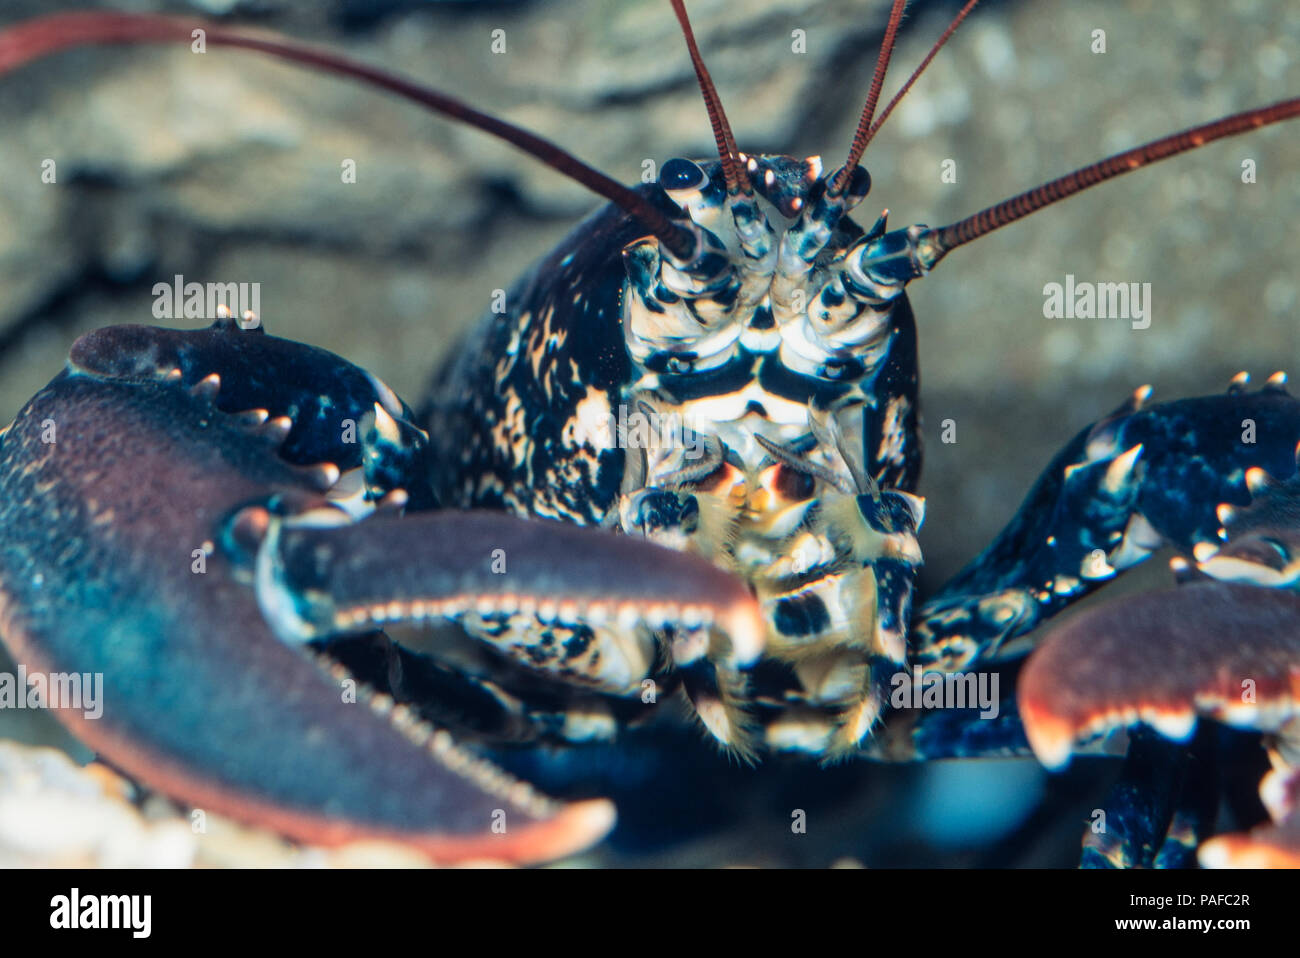 European lobster or common lobster, Homarus gammarus, head detail. Is traditionally 'highly esteemed' as a foodstuff and may fetch very high prices. - Stock Image